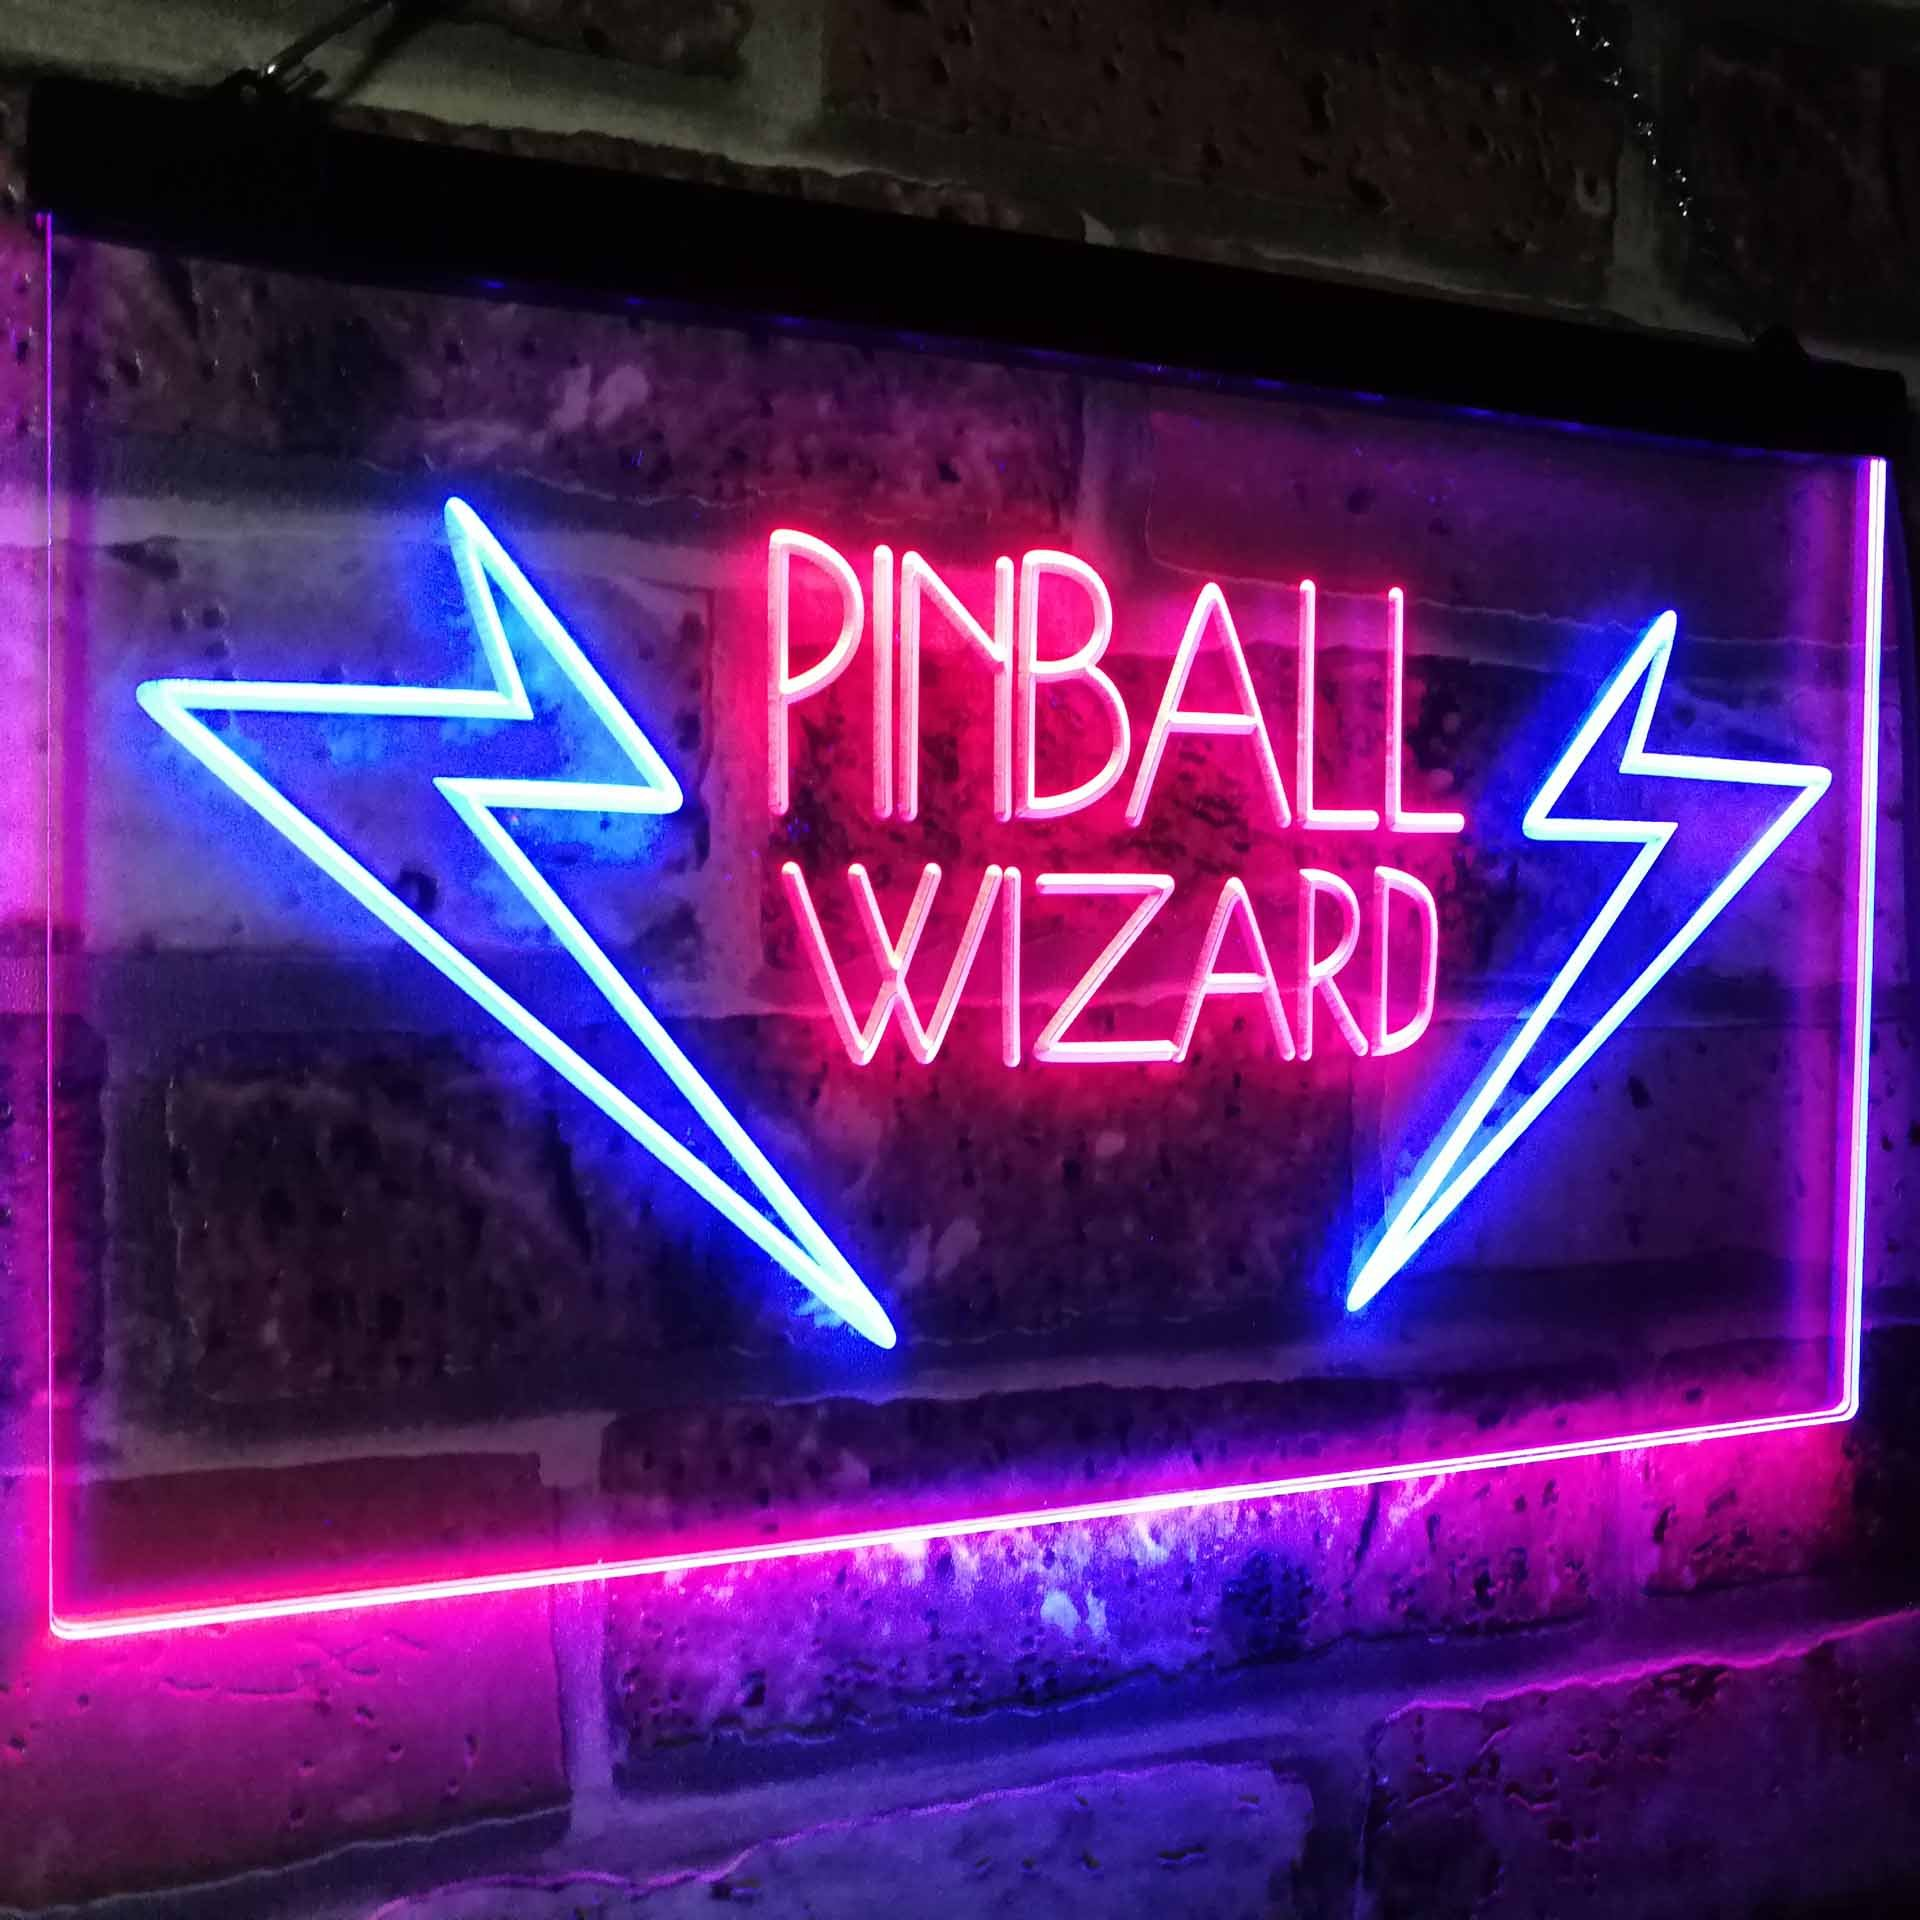 AdvpPro 2C Pinball Wizard Game Room Display Bar Beer Club Dual Color LED Neon Sign Blue & Red 12'' x 8.5'' st6s32-i2797-br by AdvpPro 2C (Image #4)